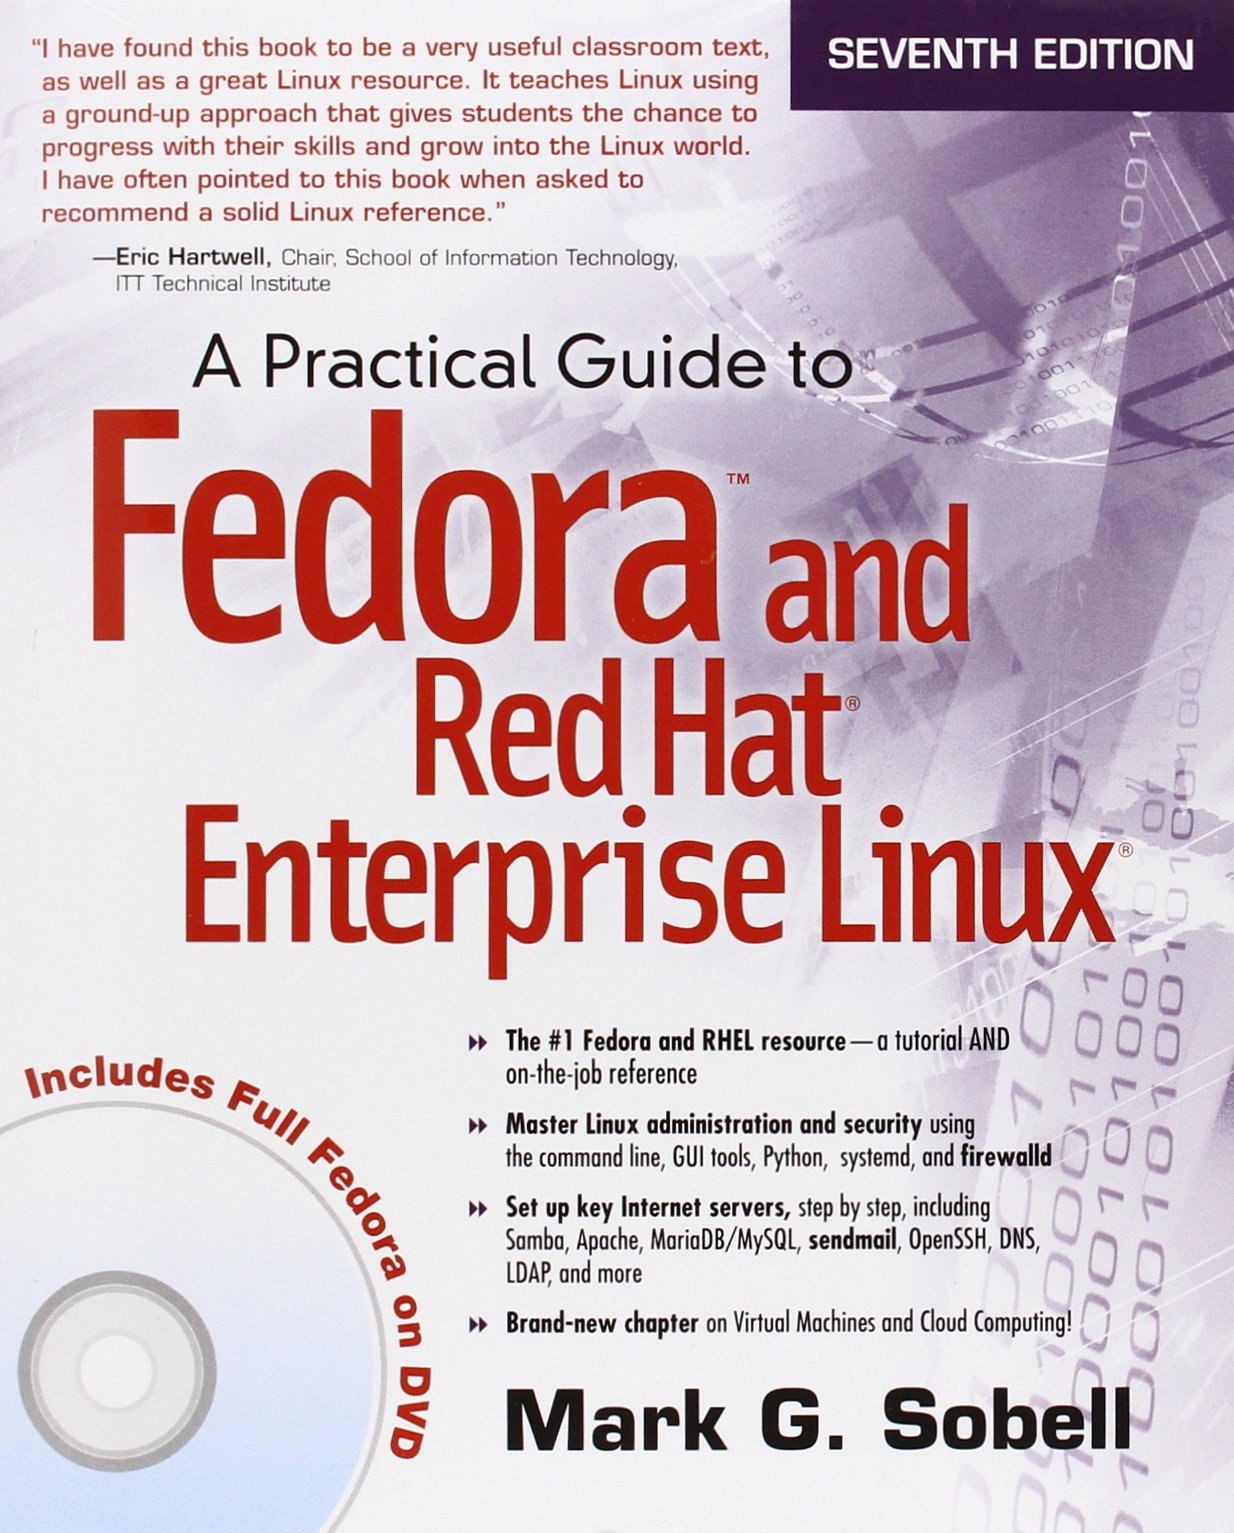 Buy a practical guide to fedora and red hat enterprise linux book buy a practical guide to fedora and red hat enterprise linux book online at low prices in india a practical guide to fedora and red hat enterprise linux baditri Gallery